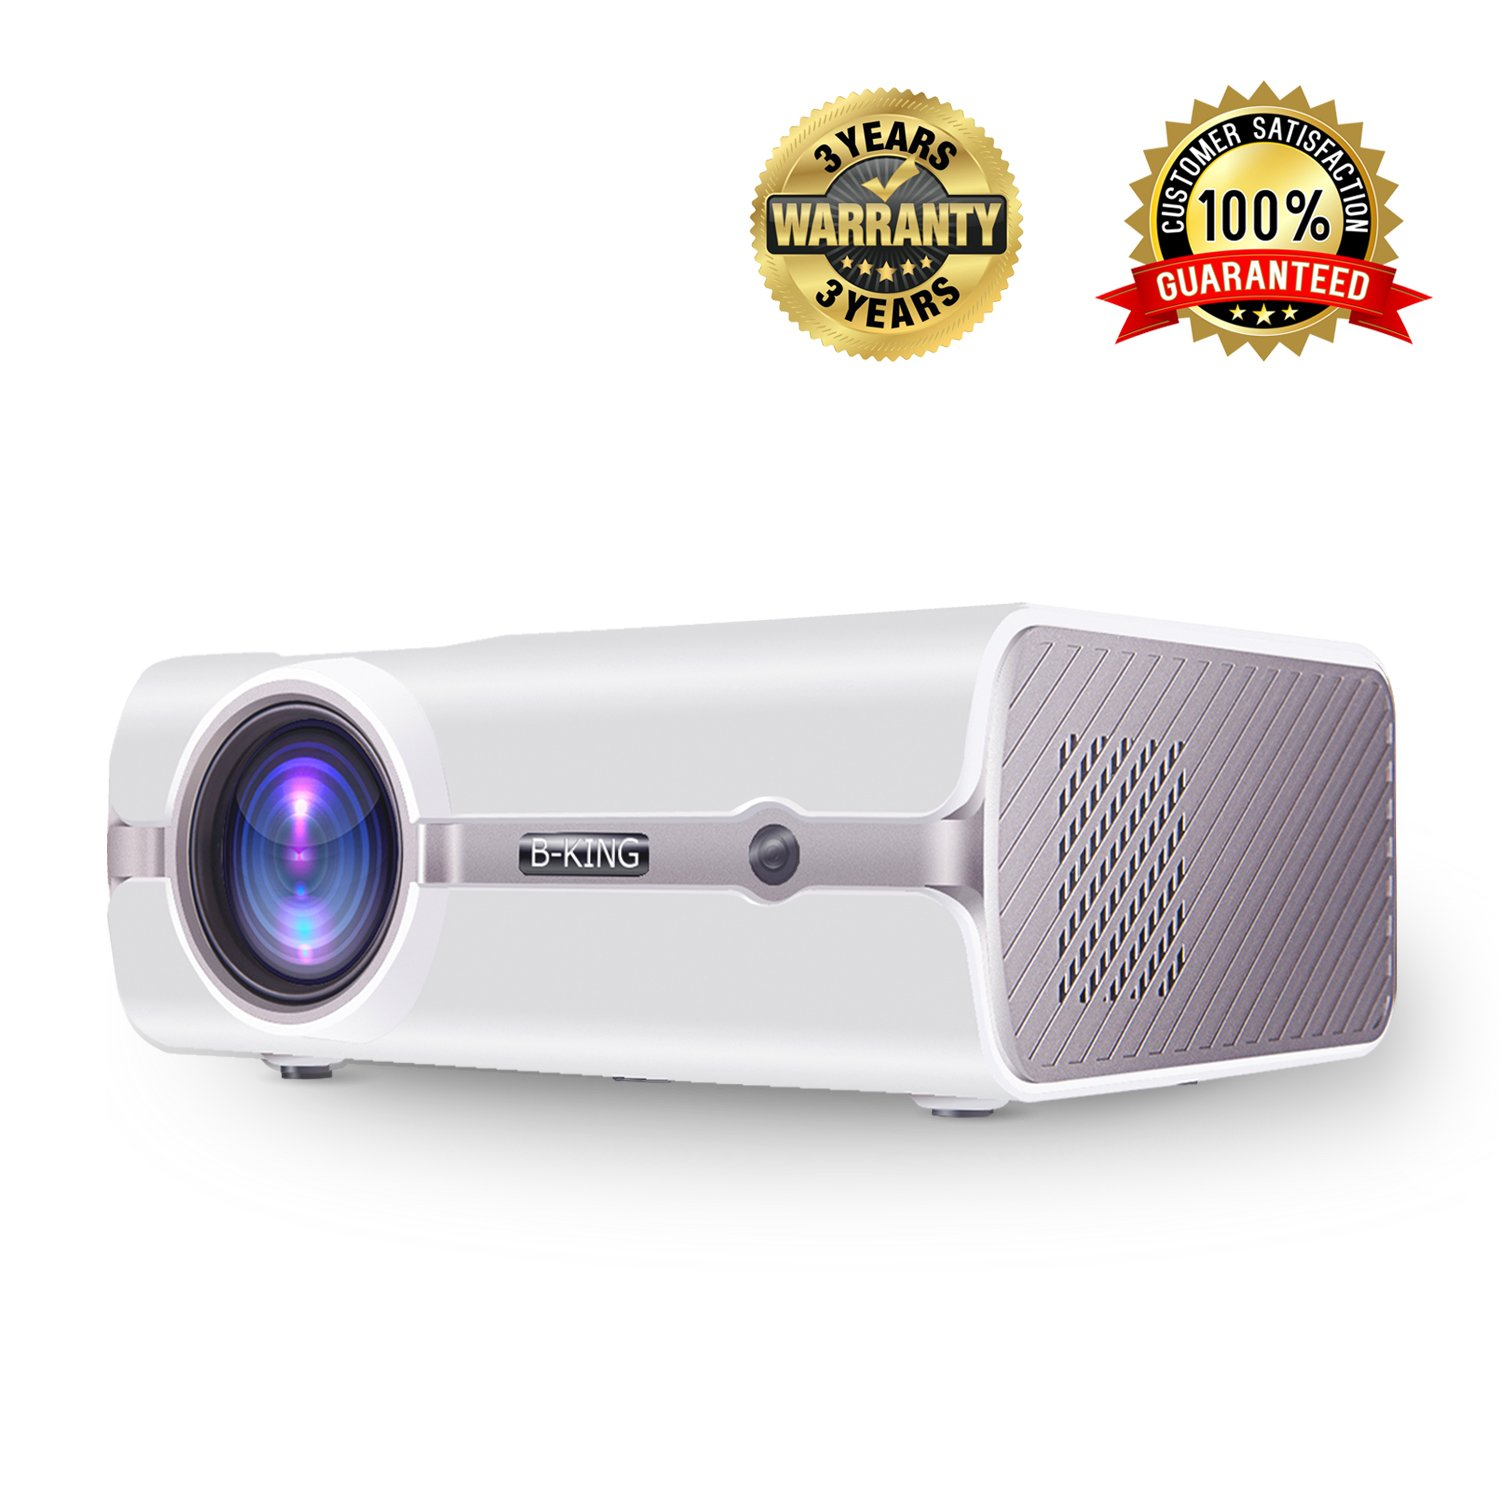 Home Theater Projector 1800 Lumens Multimedia Portable Video Projector 1080P Full HD Support HDMI USB VGA AV Laptop iPhone Andriod Smartphone PS4 Xbox TV Box by BeamerKing